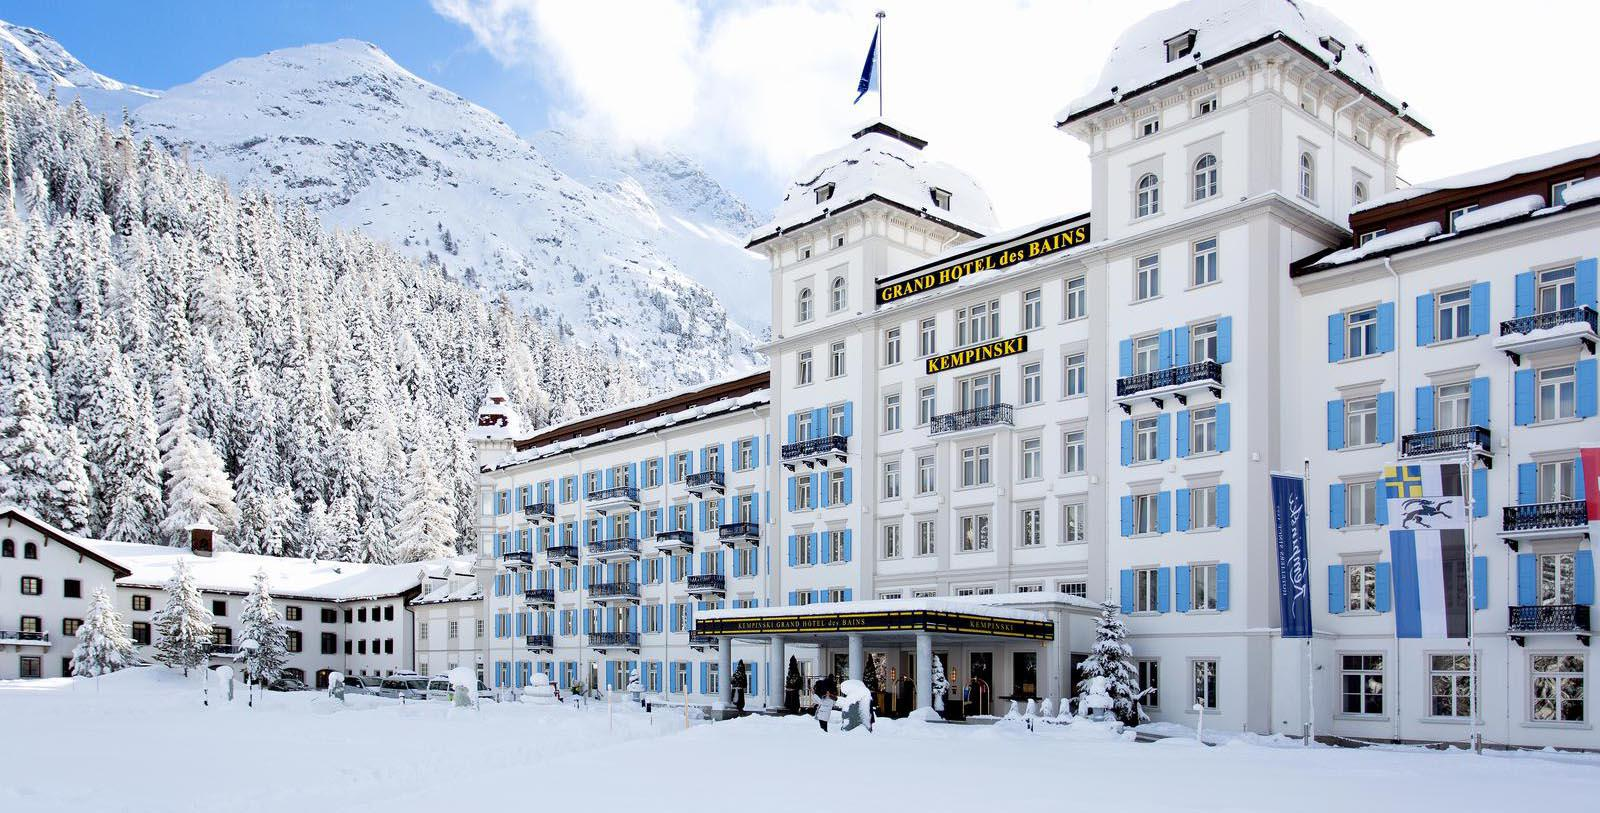 Image of Hotel Exterior Kempinski Grand Hotel des Bains St. Moritz, 1864, Member of Historic Hotels Worldwide, in St. Moritz, Switzerland, Overview